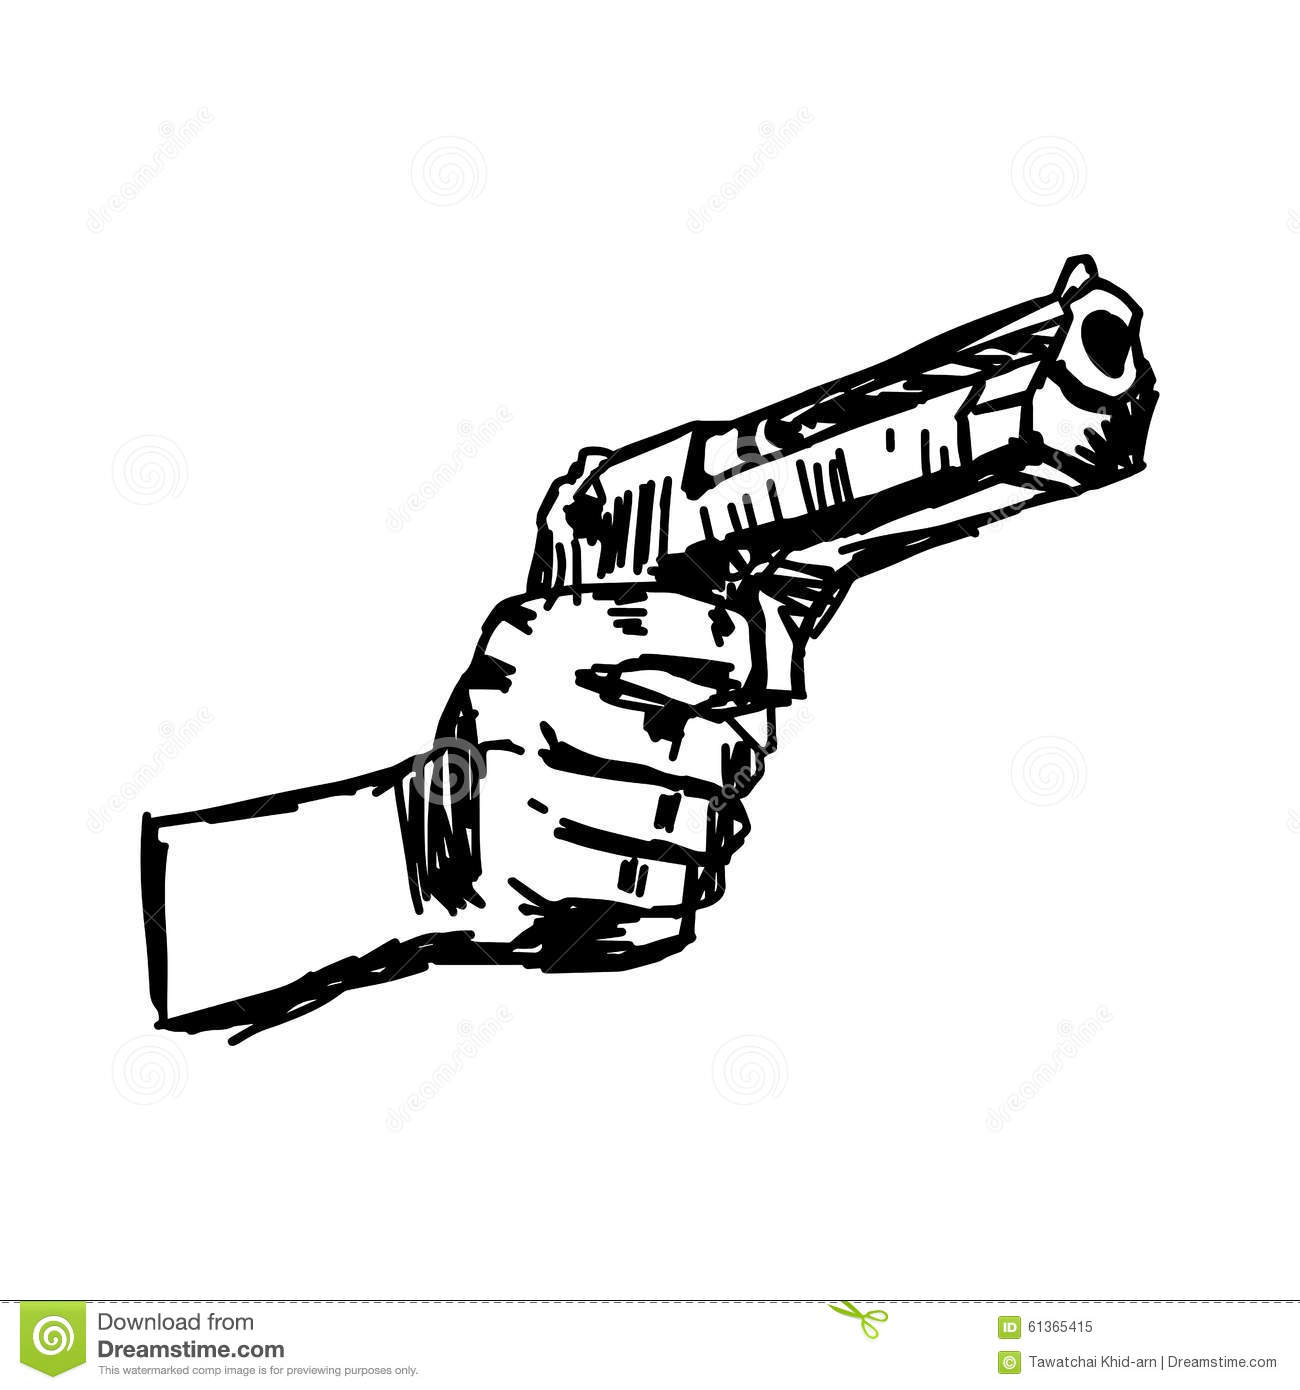 Illustration Vector Doodle Hand Drawn Of Hand Holding Gun